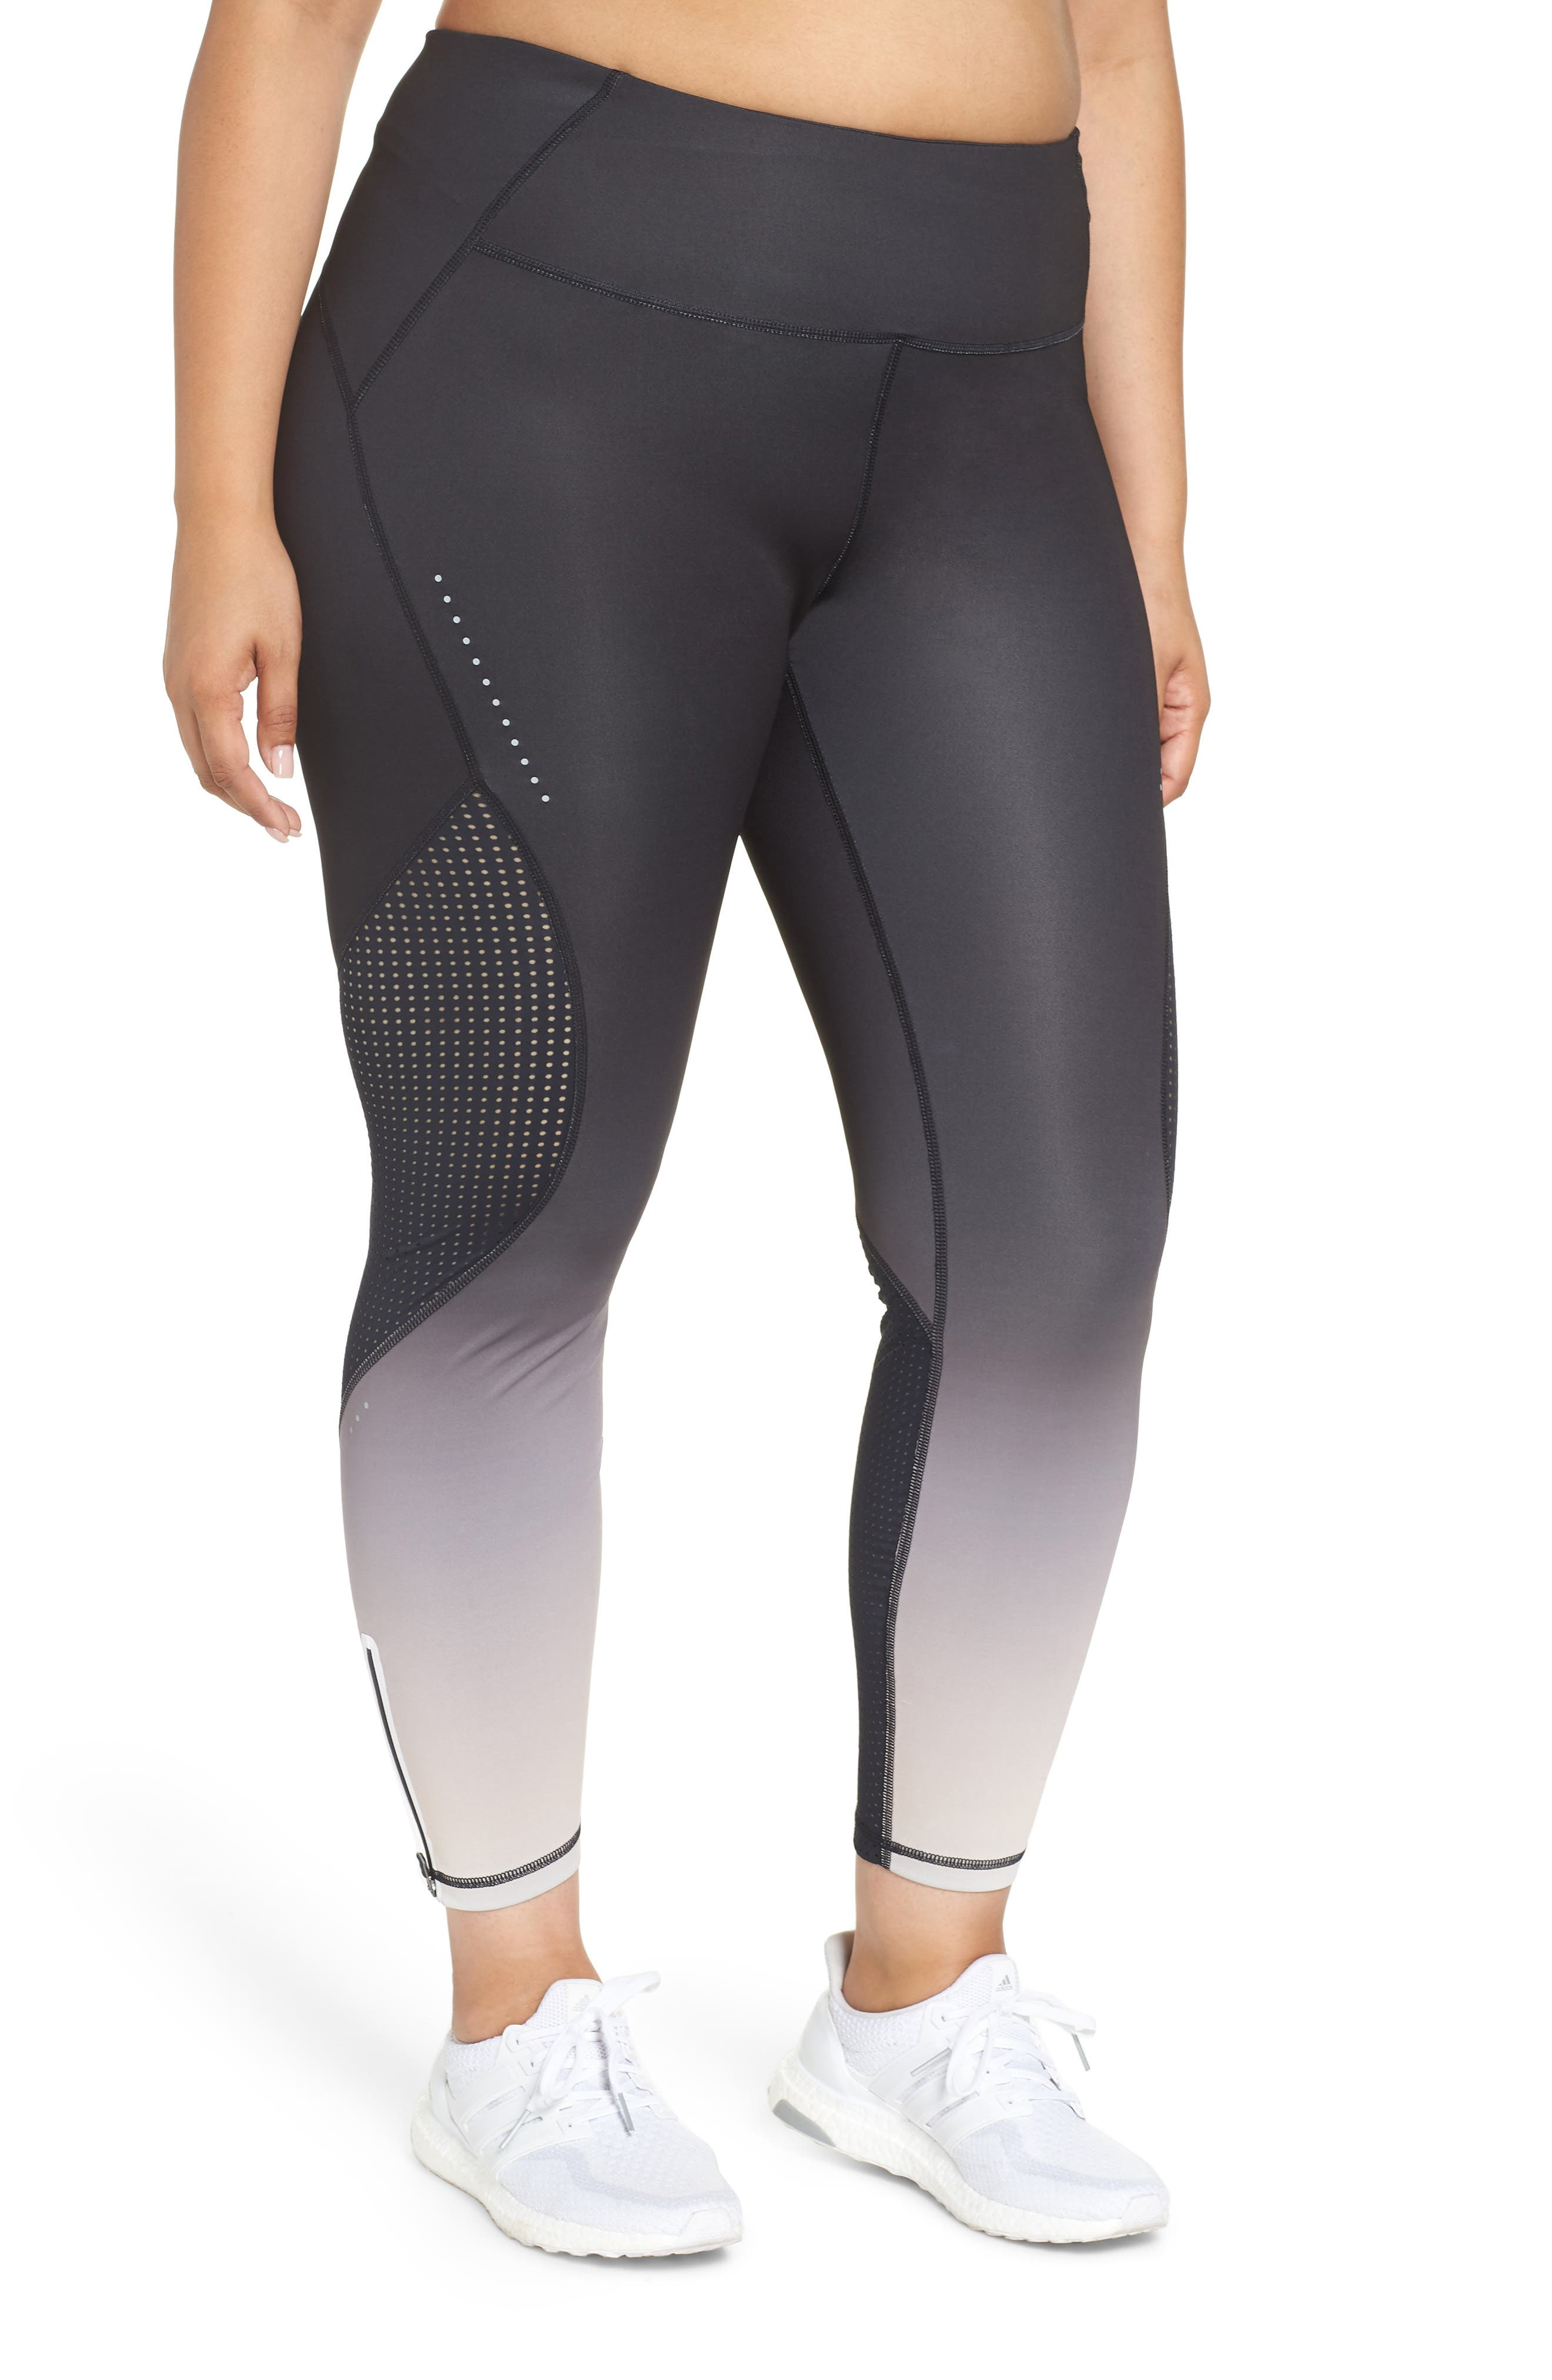 Protech V.3 Leggings,                             Main thumbnail 1, color,                             OMBRE TAUPE